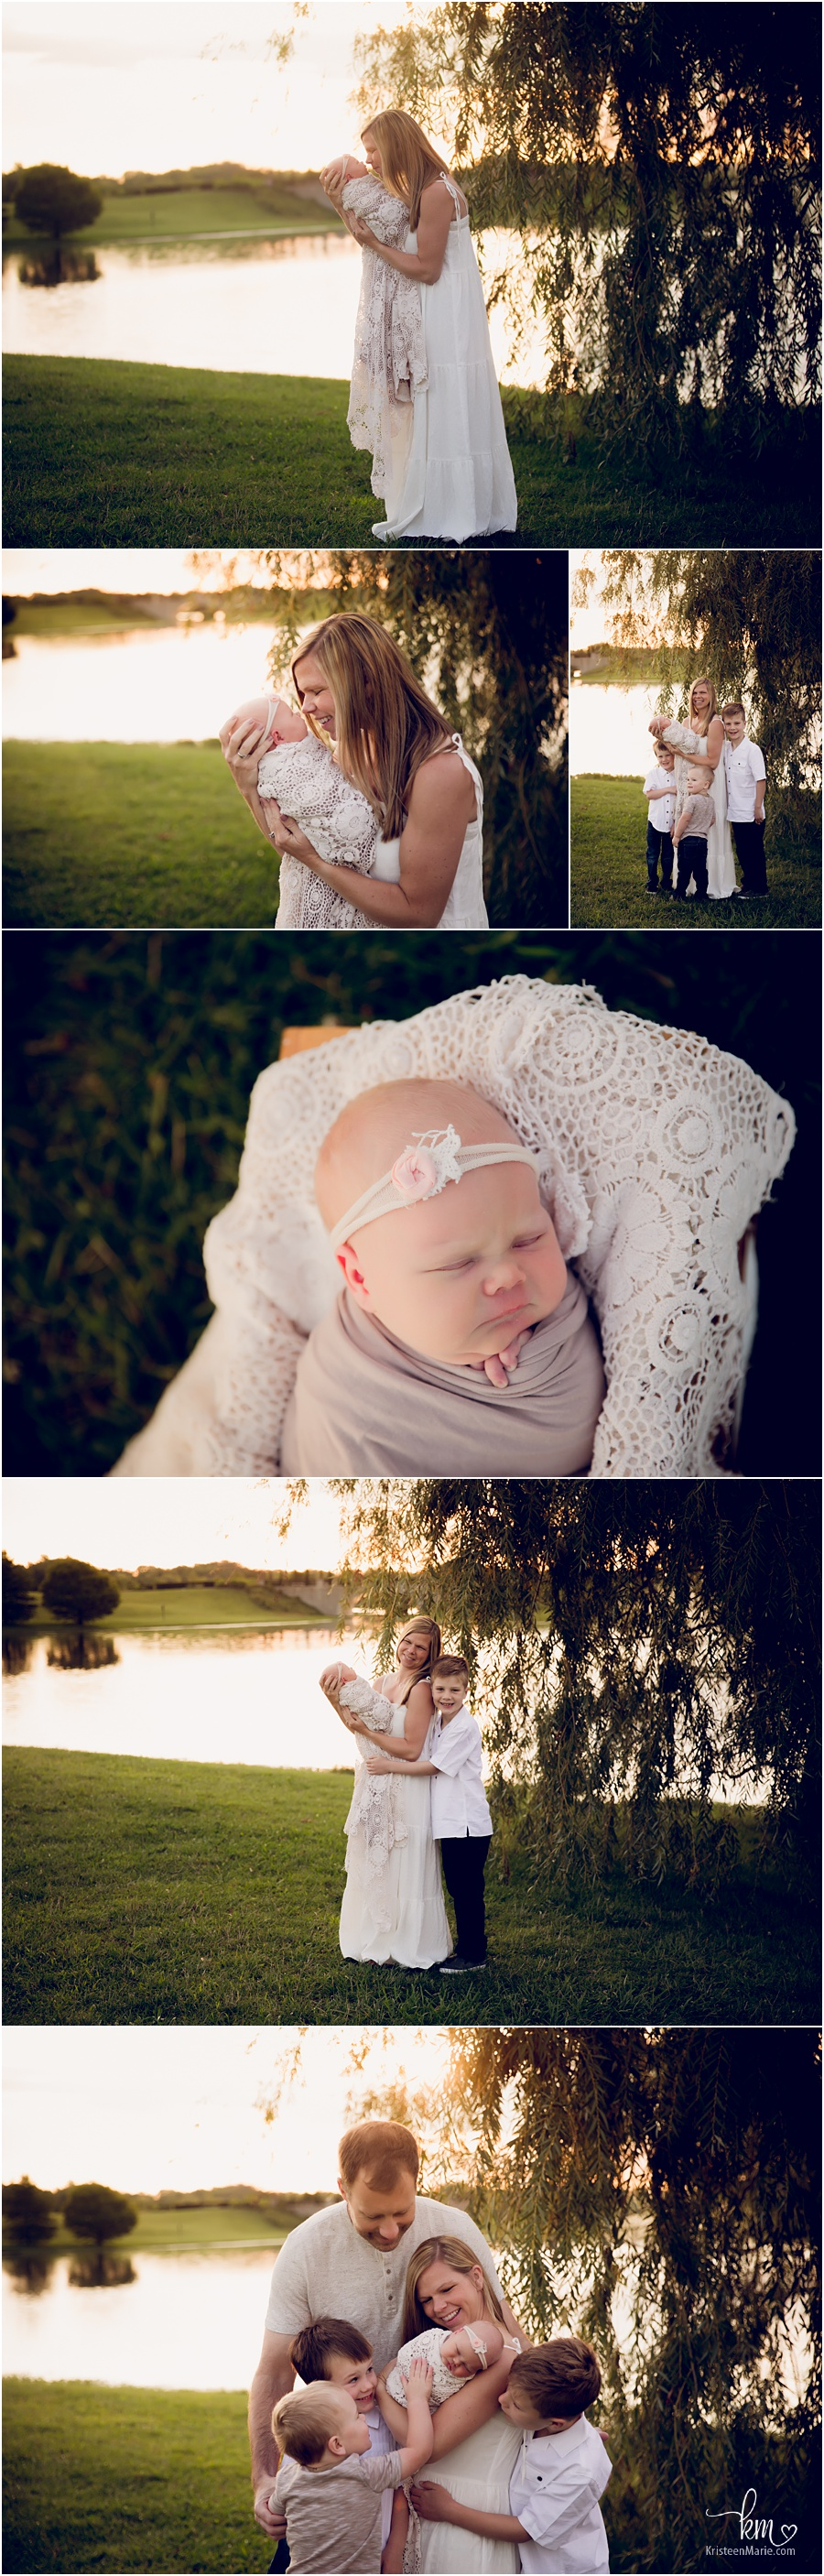 outdoor newborn photography session at sunrise